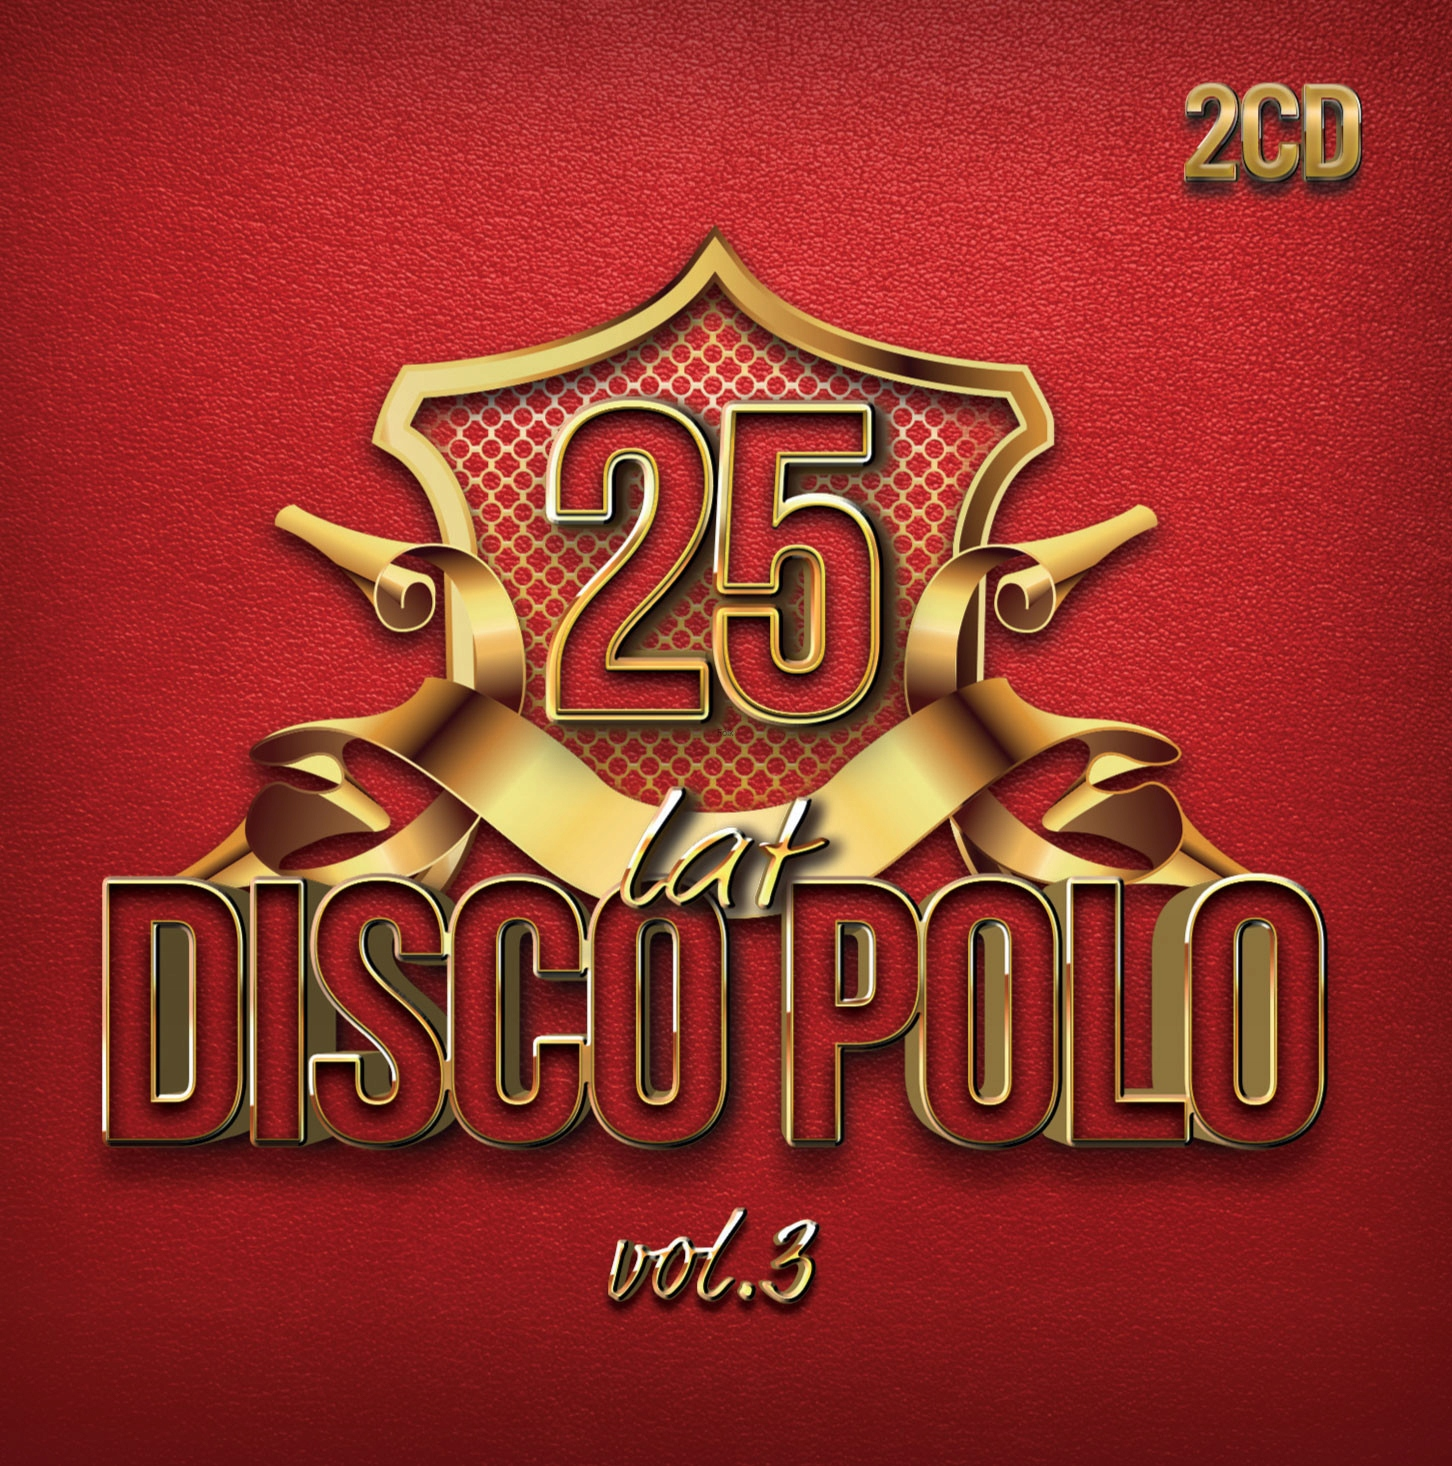 Item 25 YEARS OF DISCO POLO NEW 2 CD 2019 GIVE LOUDER